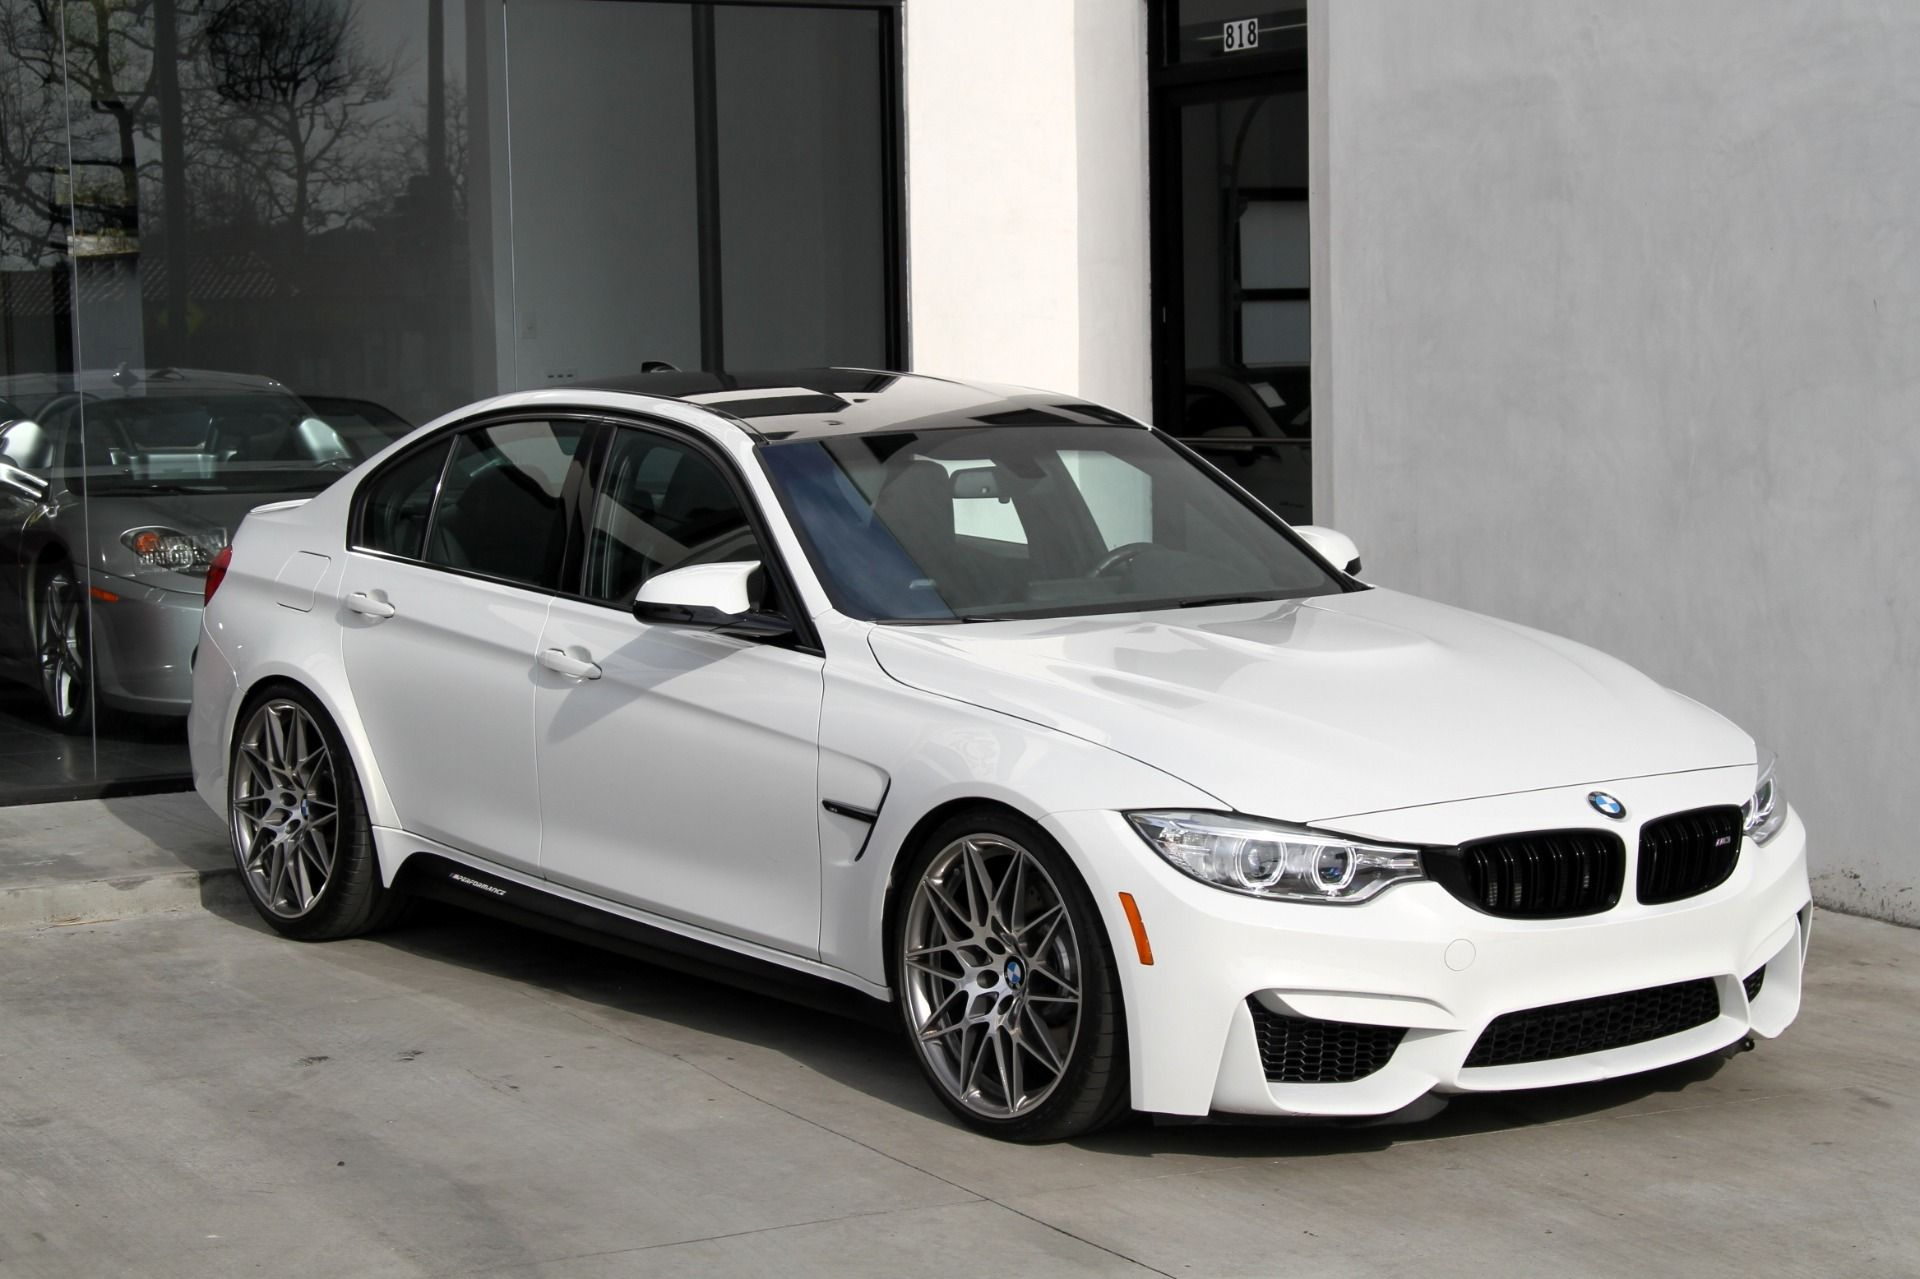 used 2017 bmw m3 competition package bmw pinterest bmw 2017 bmw and bmw m3. Black Bedroom Furniture Sets. Home Design Ideas